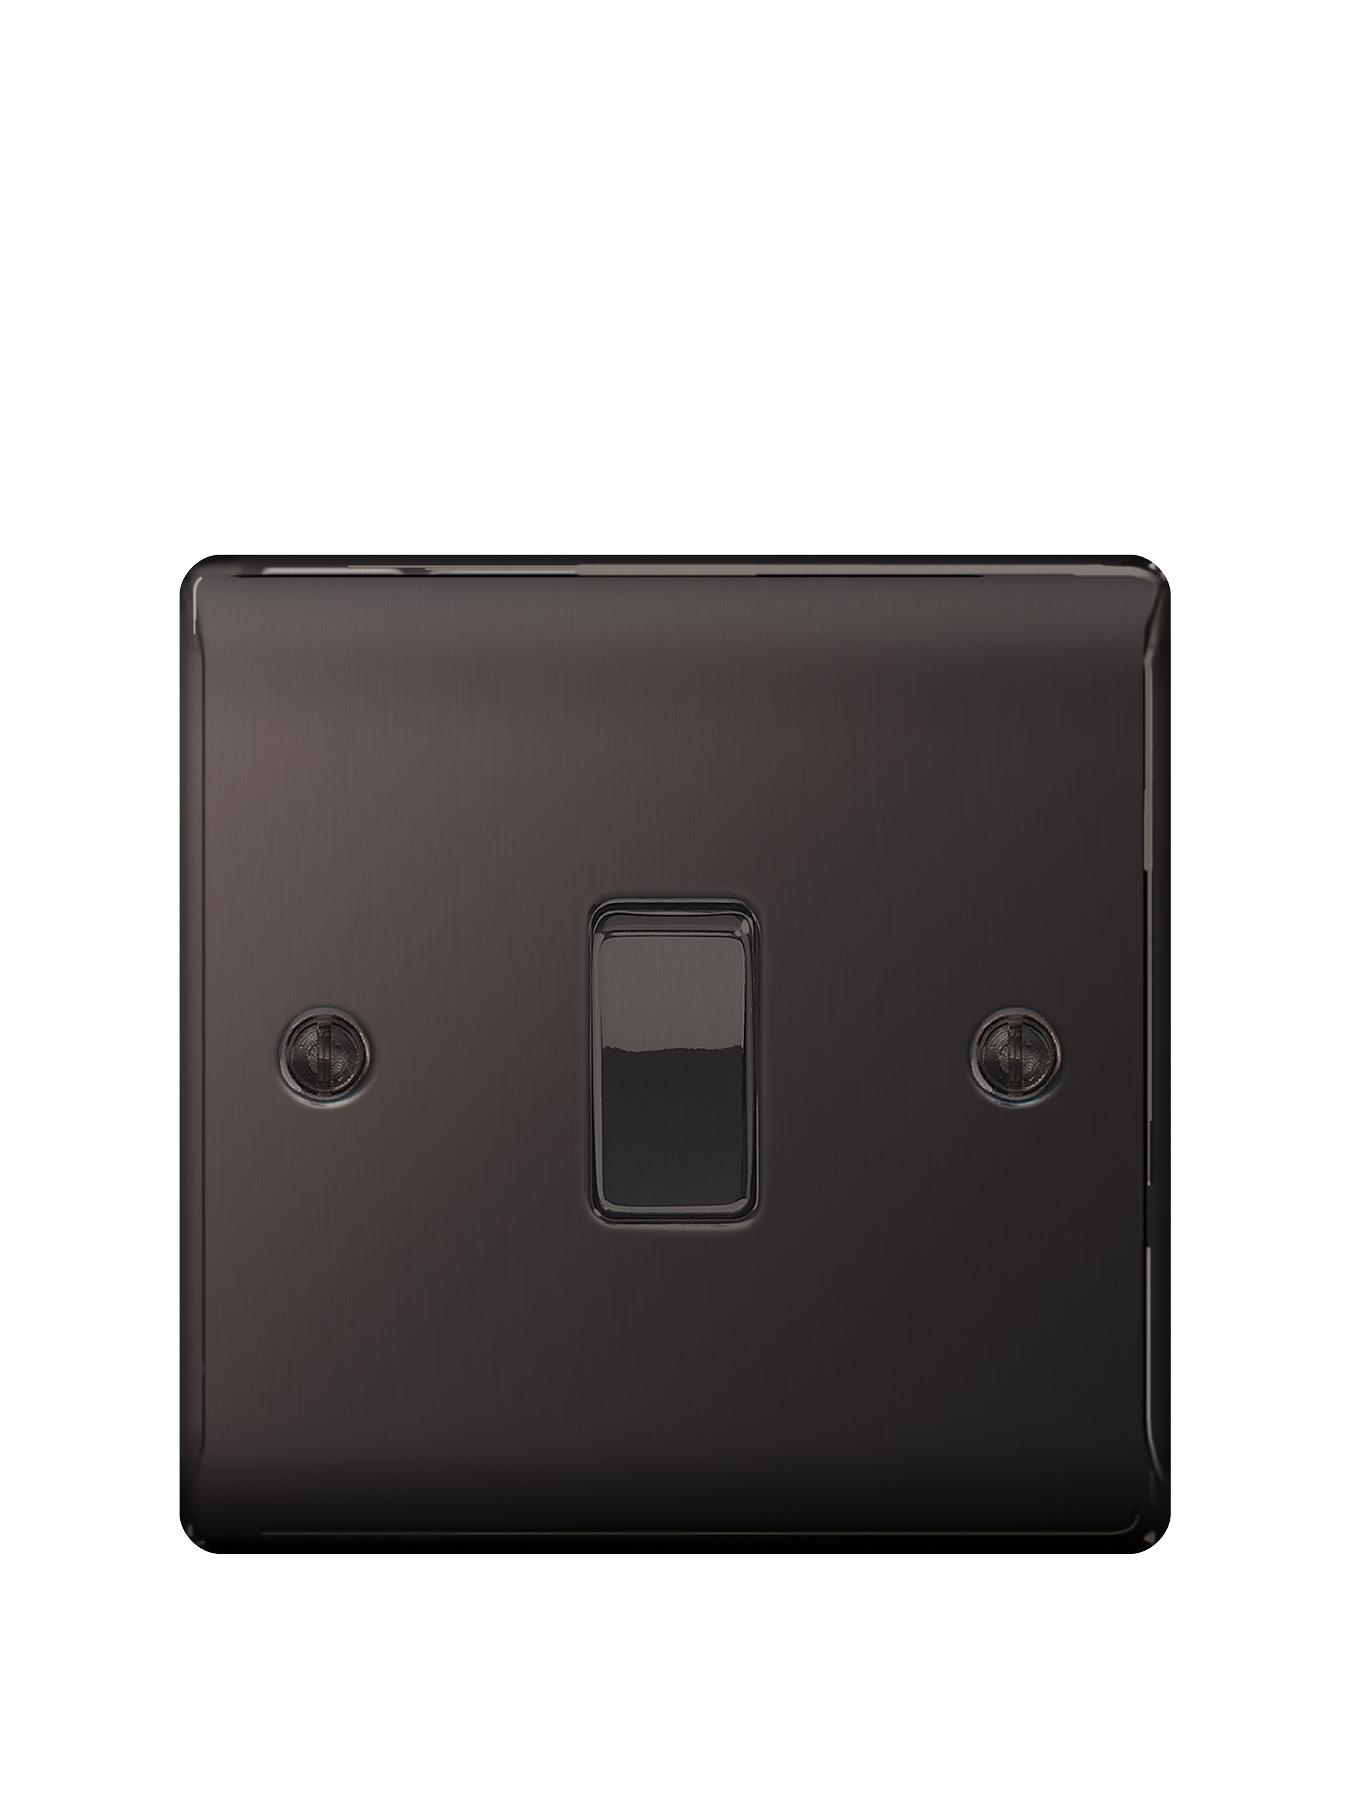 British General Electrical Raised 1g 2-Way Switch - Black Nickel